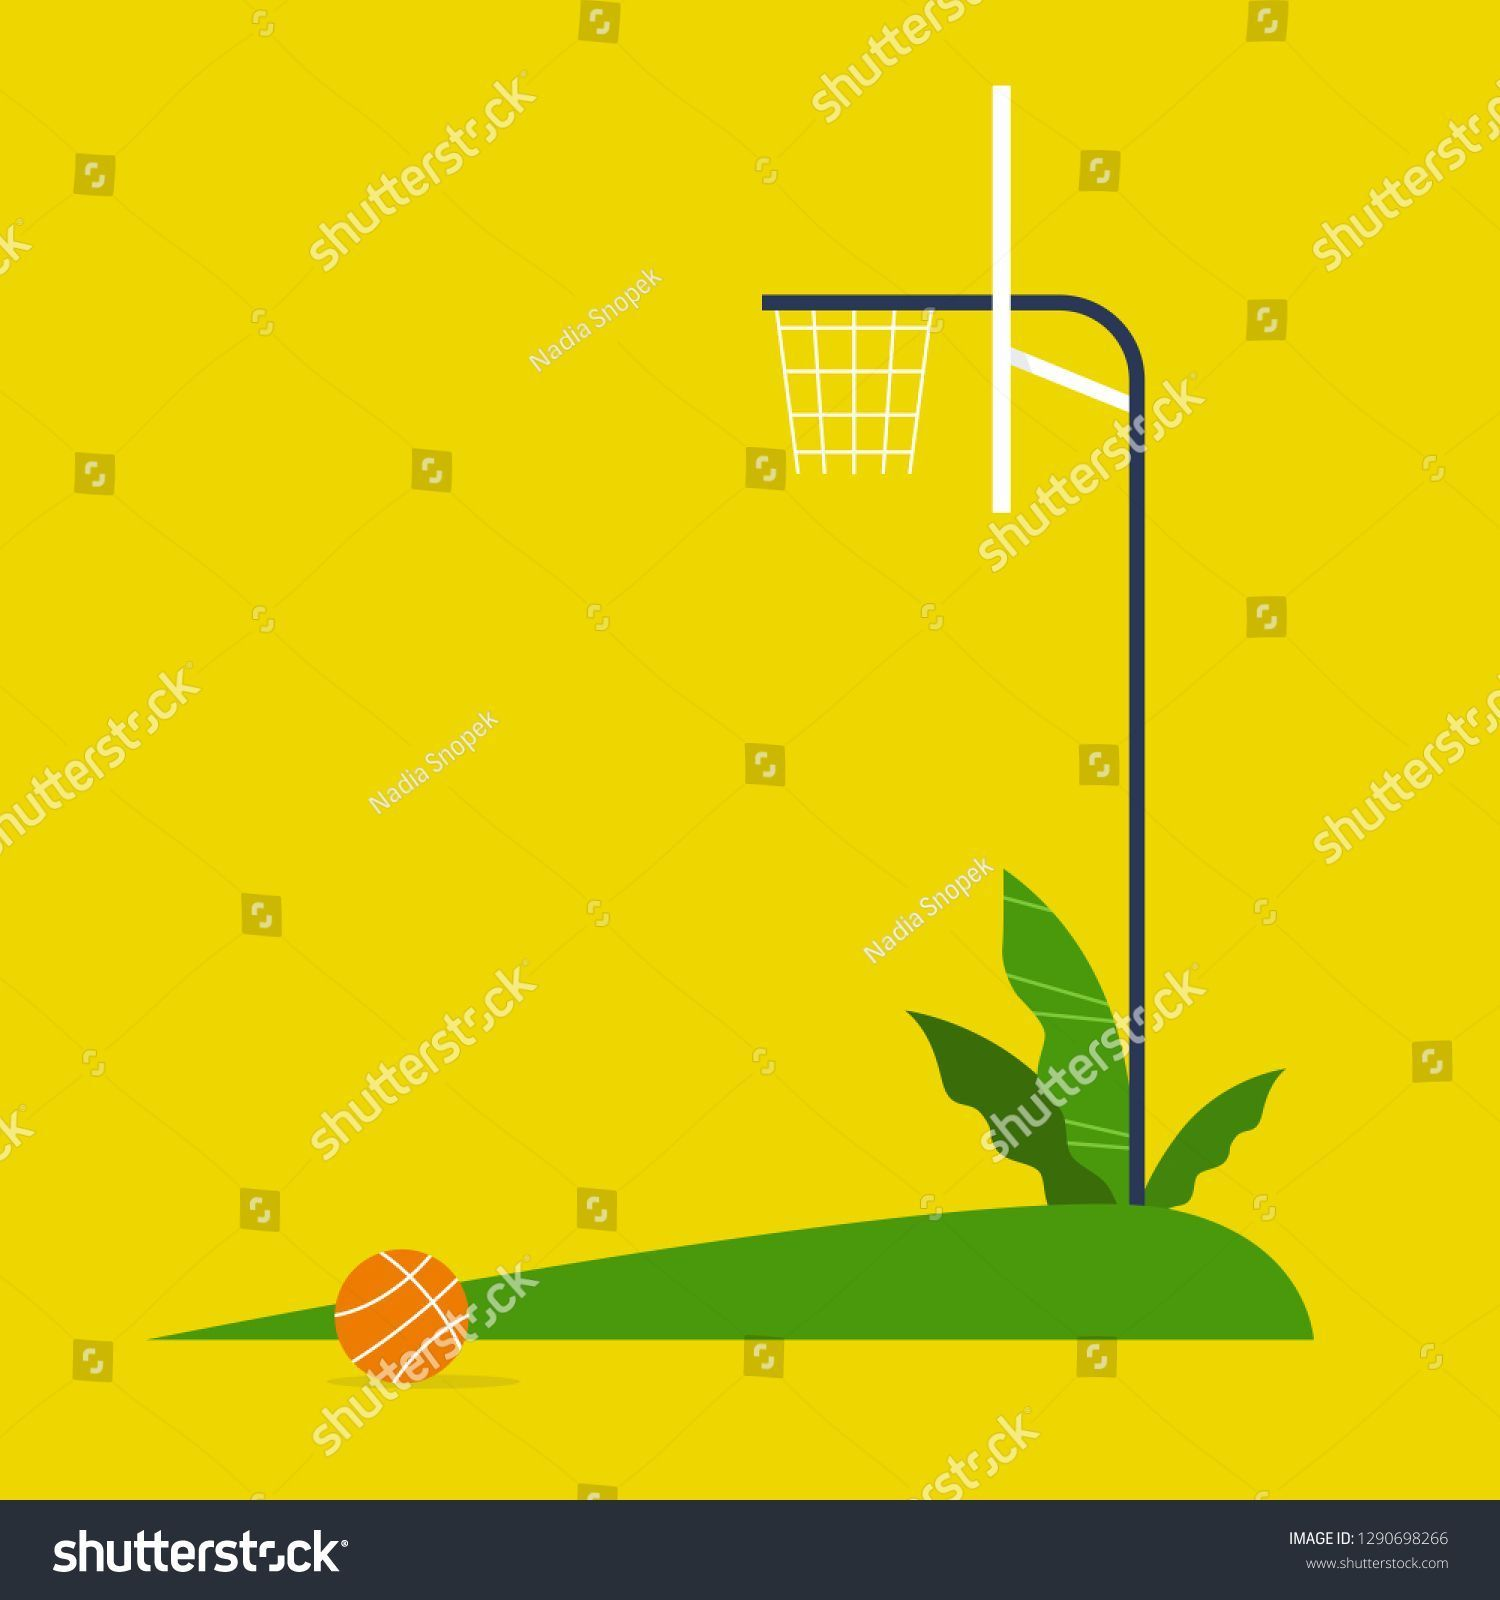 Outdoor Basketball Court No People Copy Space Side View Flat Editable Vector Basket In 2020 Outdoor Basketball Court Basketball Court Home Basketball Court